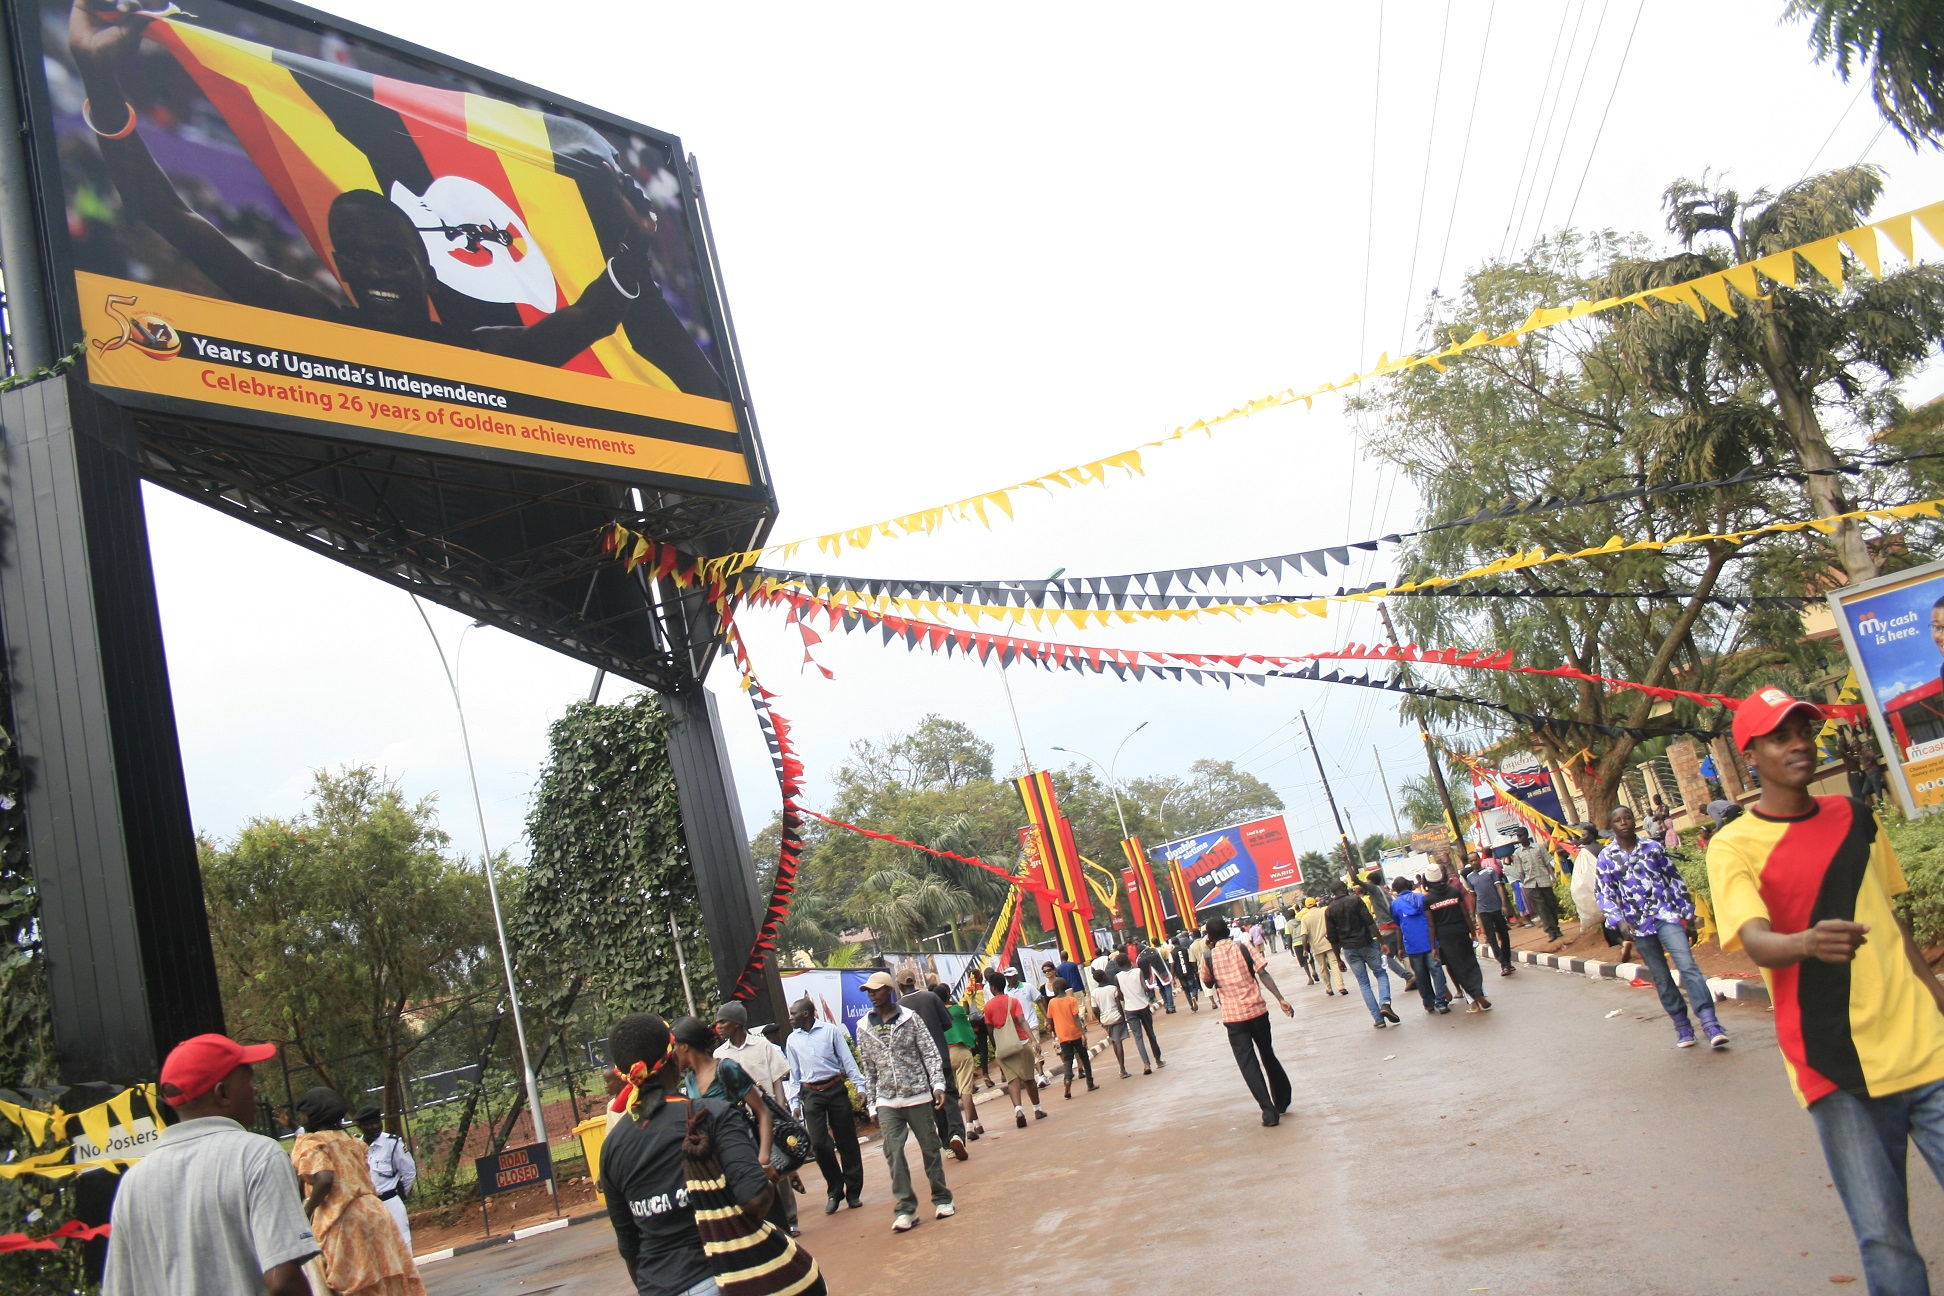 Black, yellow and red decorations adorn streets in Uganda during last year's 50th anniversary celebration